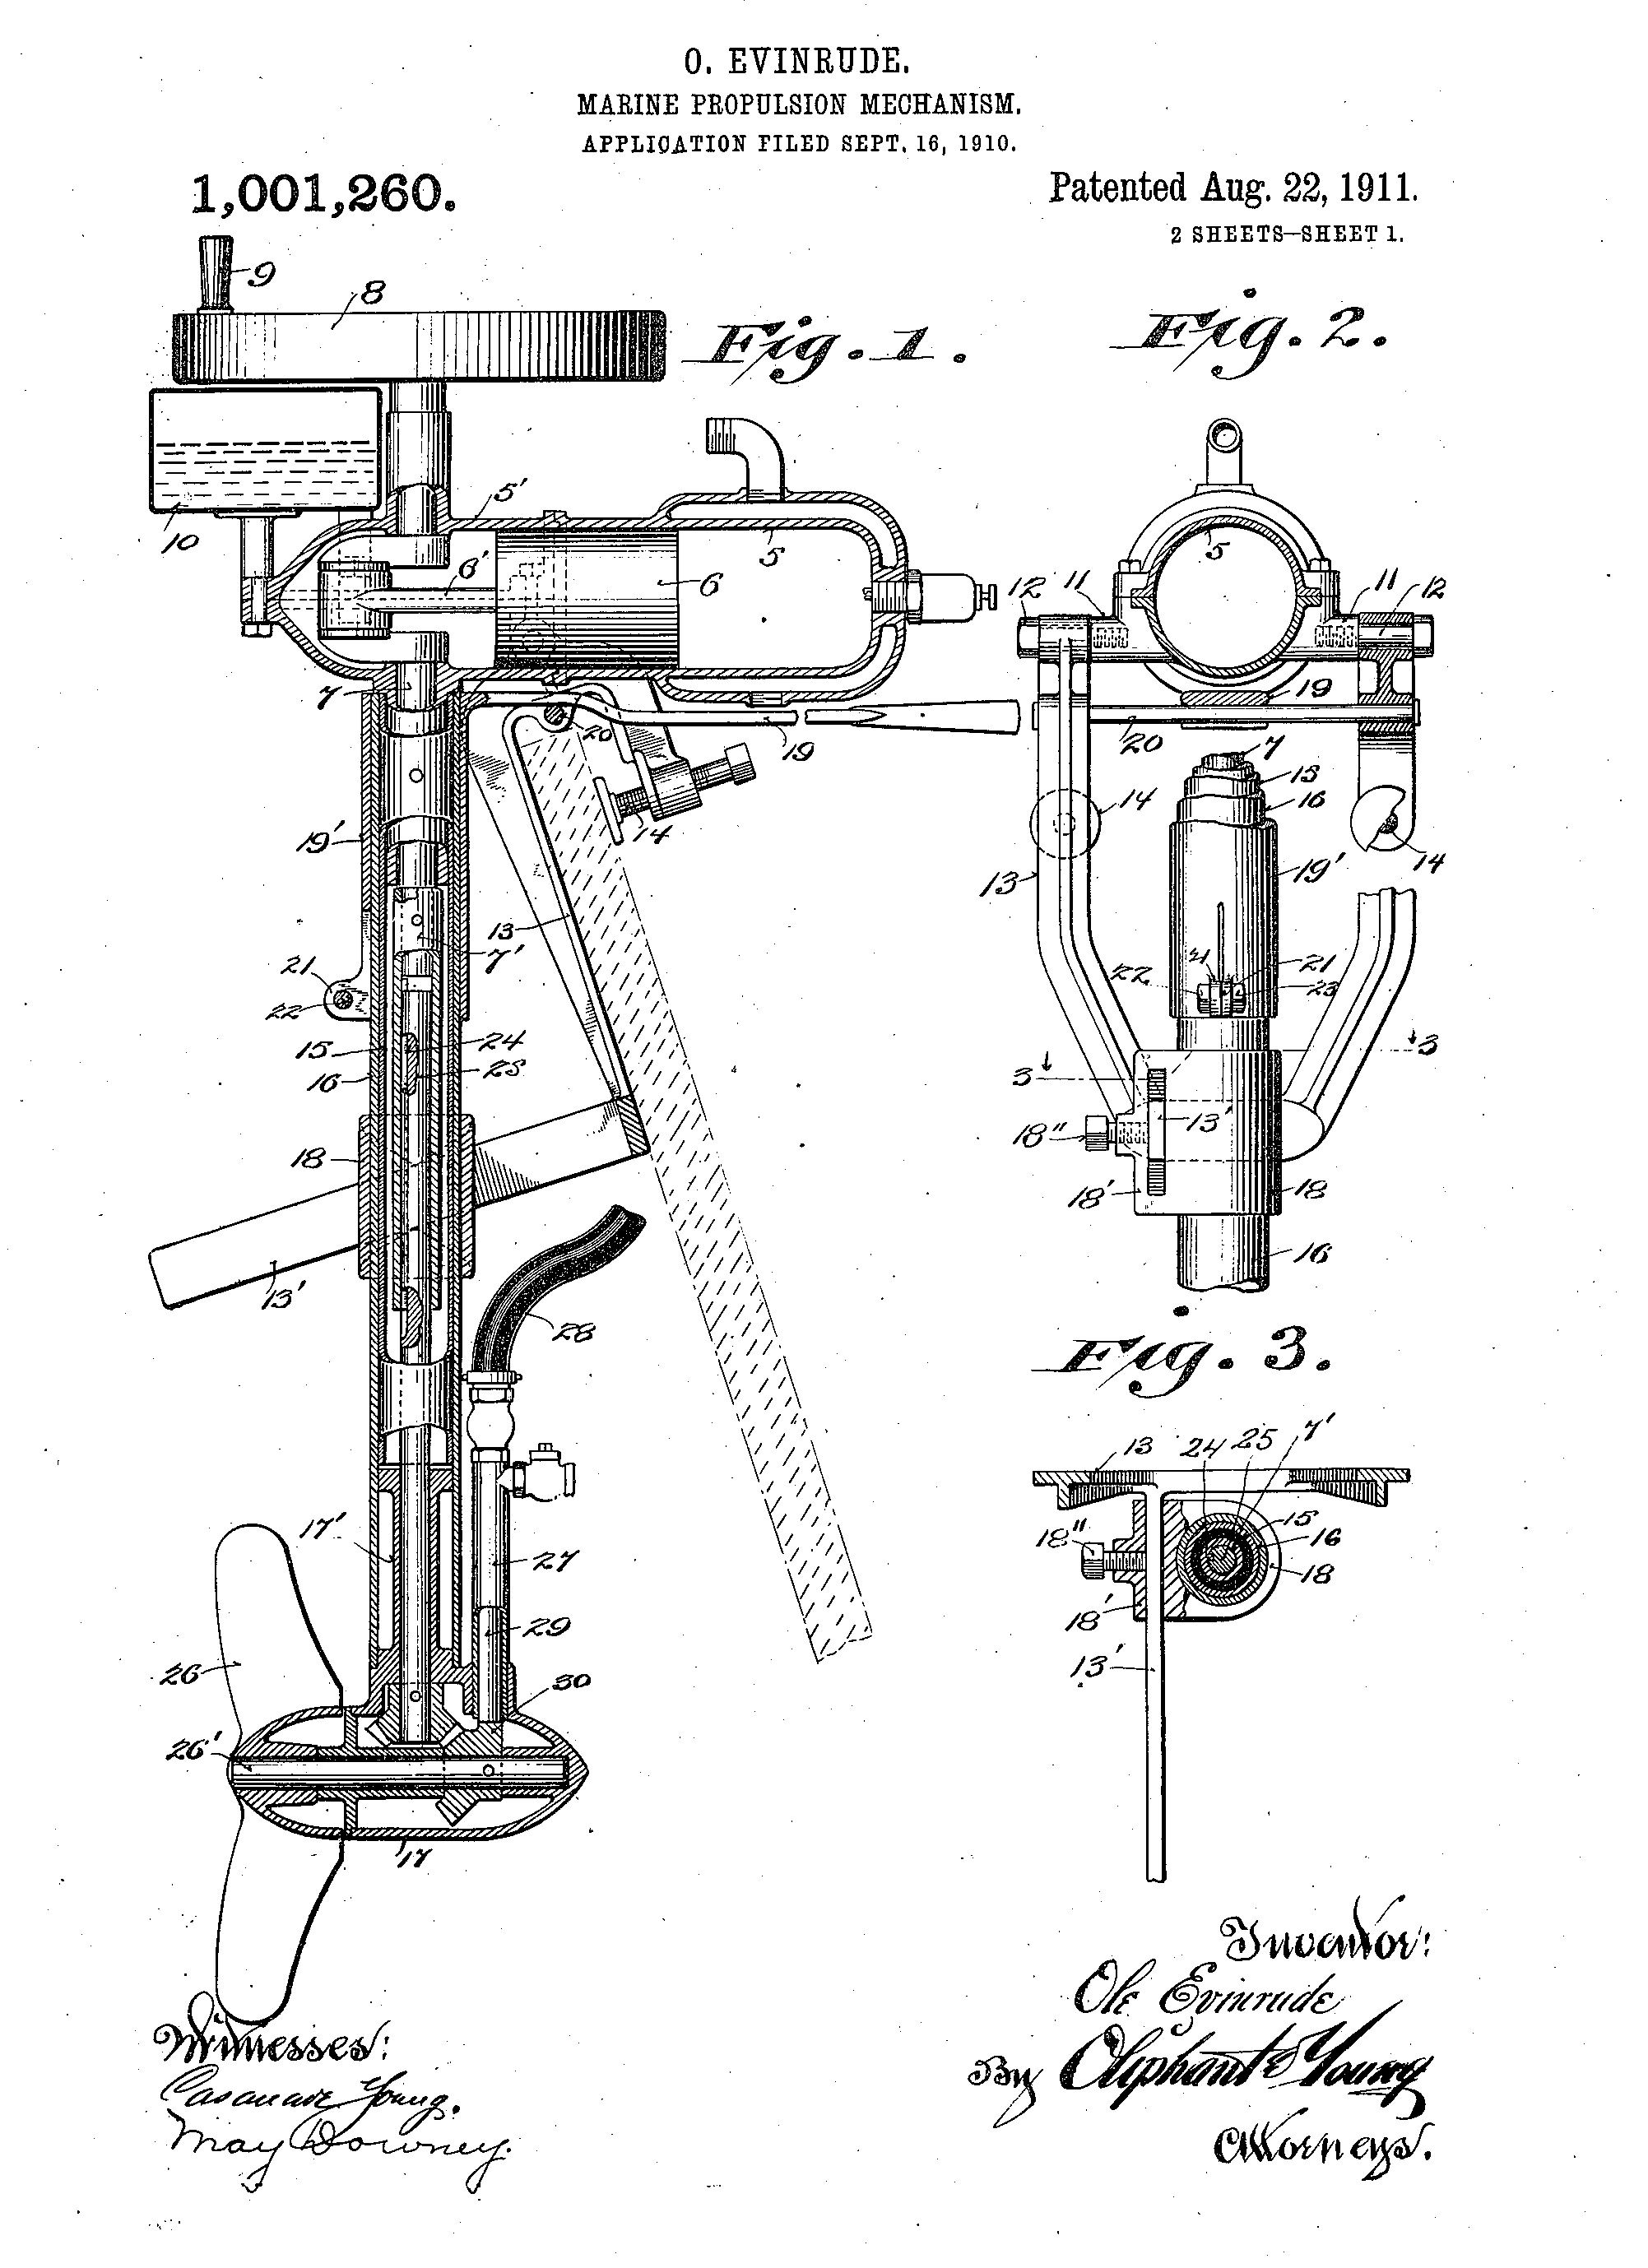 Outboard Motor Patent Drawing Ole Evinrude